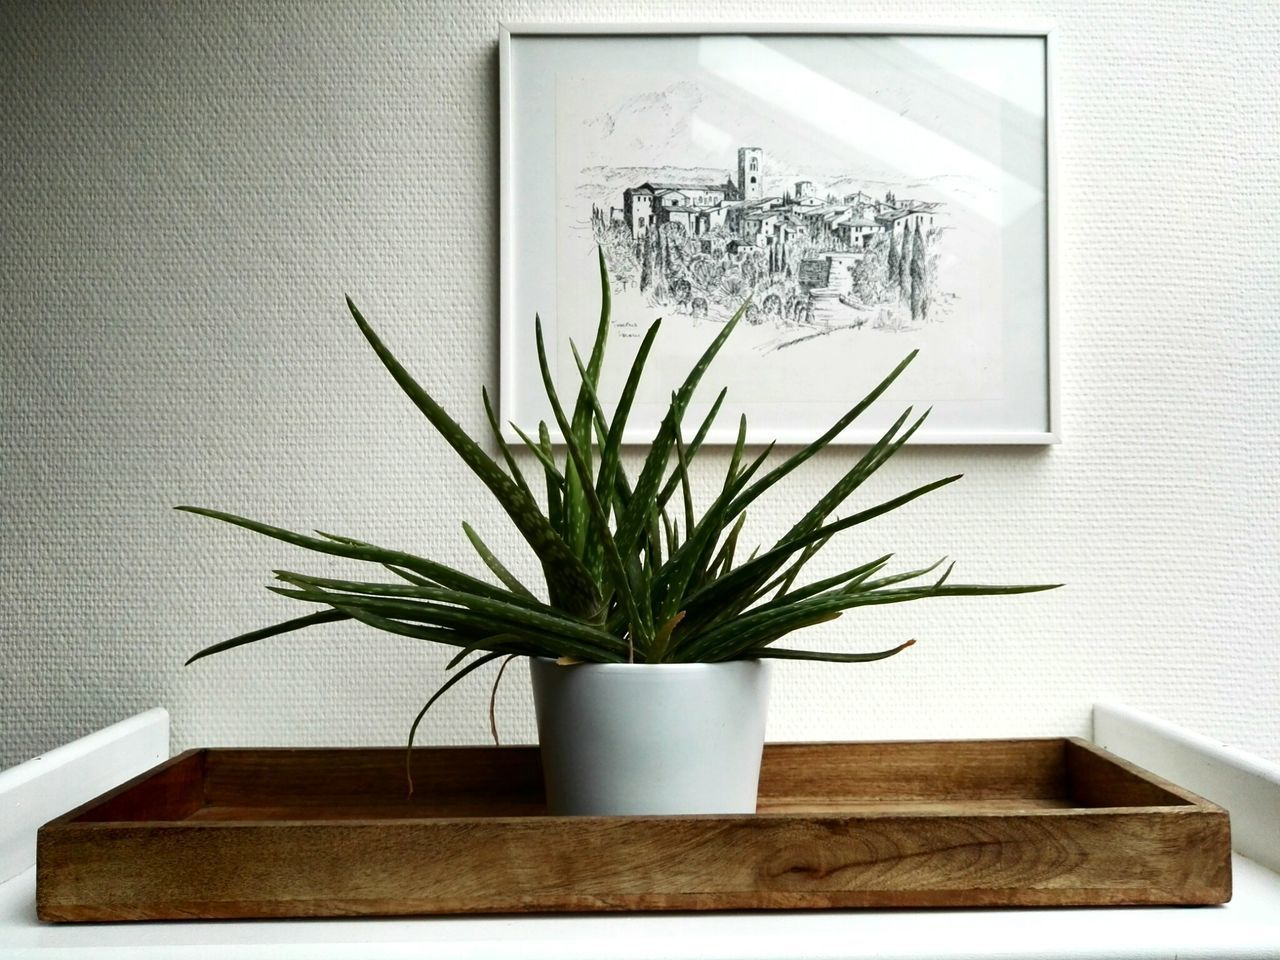 Plant Indoors  No People Day Aloe Vera Aloe Vera Plant Flower Picture Drawn